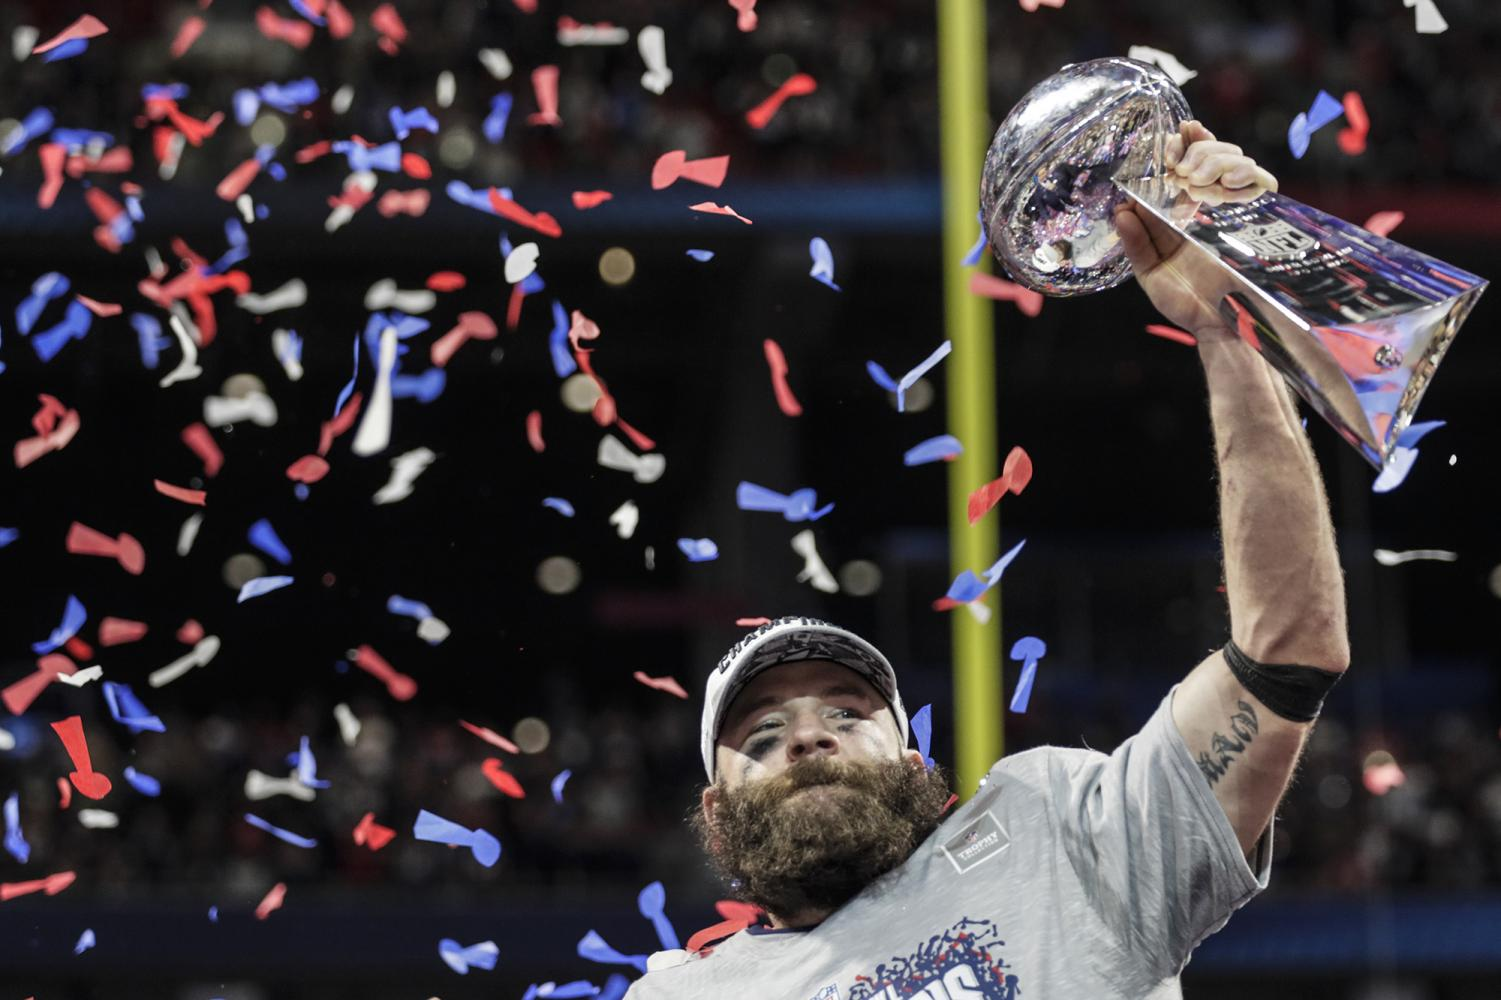 New England Patriots wide receiver Julian Edelman raises the Vince Lombardi Trophy after a 13-3 win against the Los Angeles Rams in Super Bowl LIII at Mercedes-Benz Stadium in Atlanta on Sunday, Feb. 3, 2019. (Curtis Compton/Atlanta Journal-Constitution/TNS)